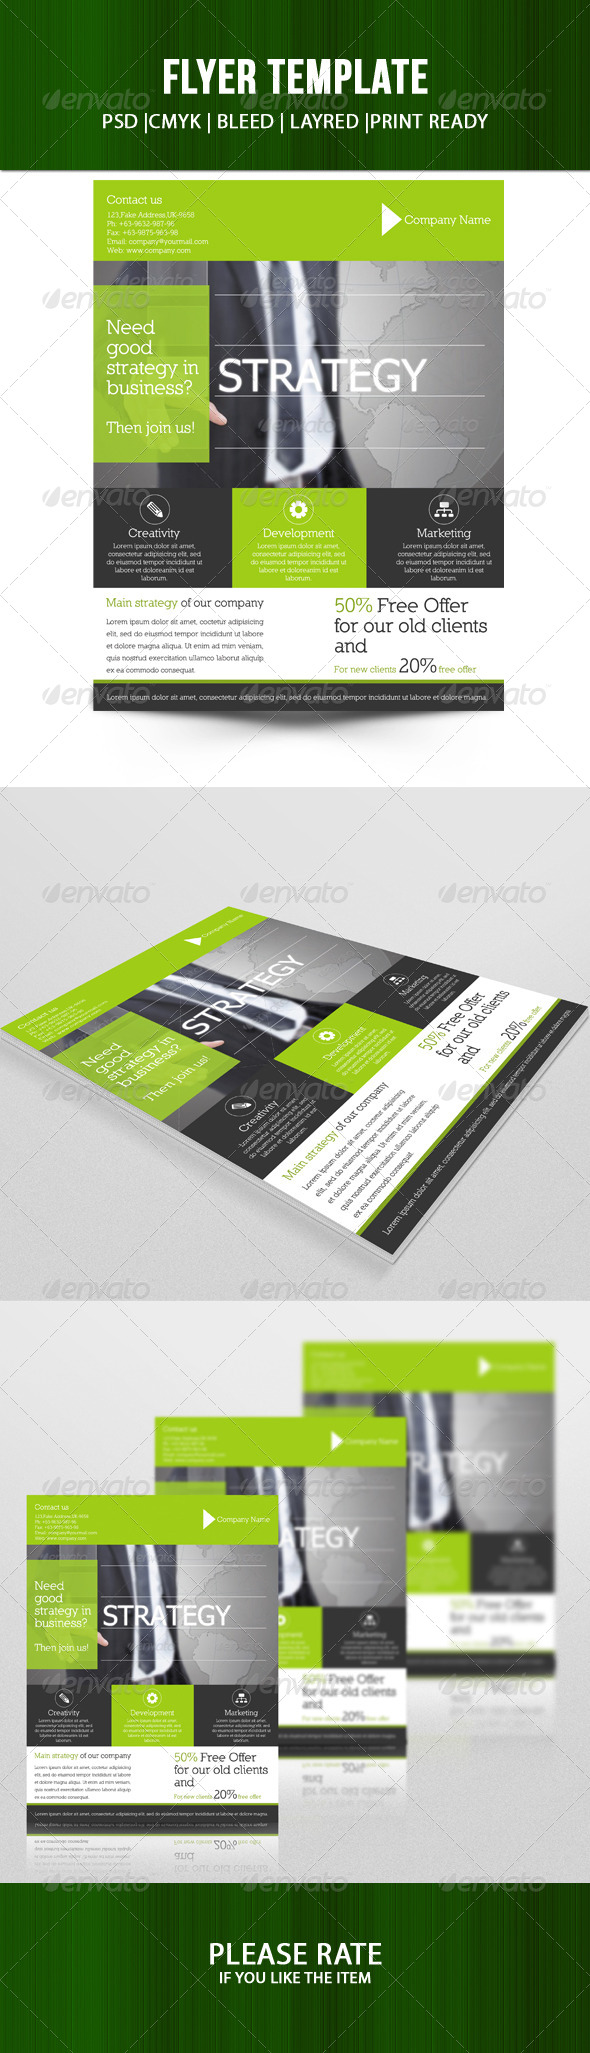 Corporate Flyer Template-V51